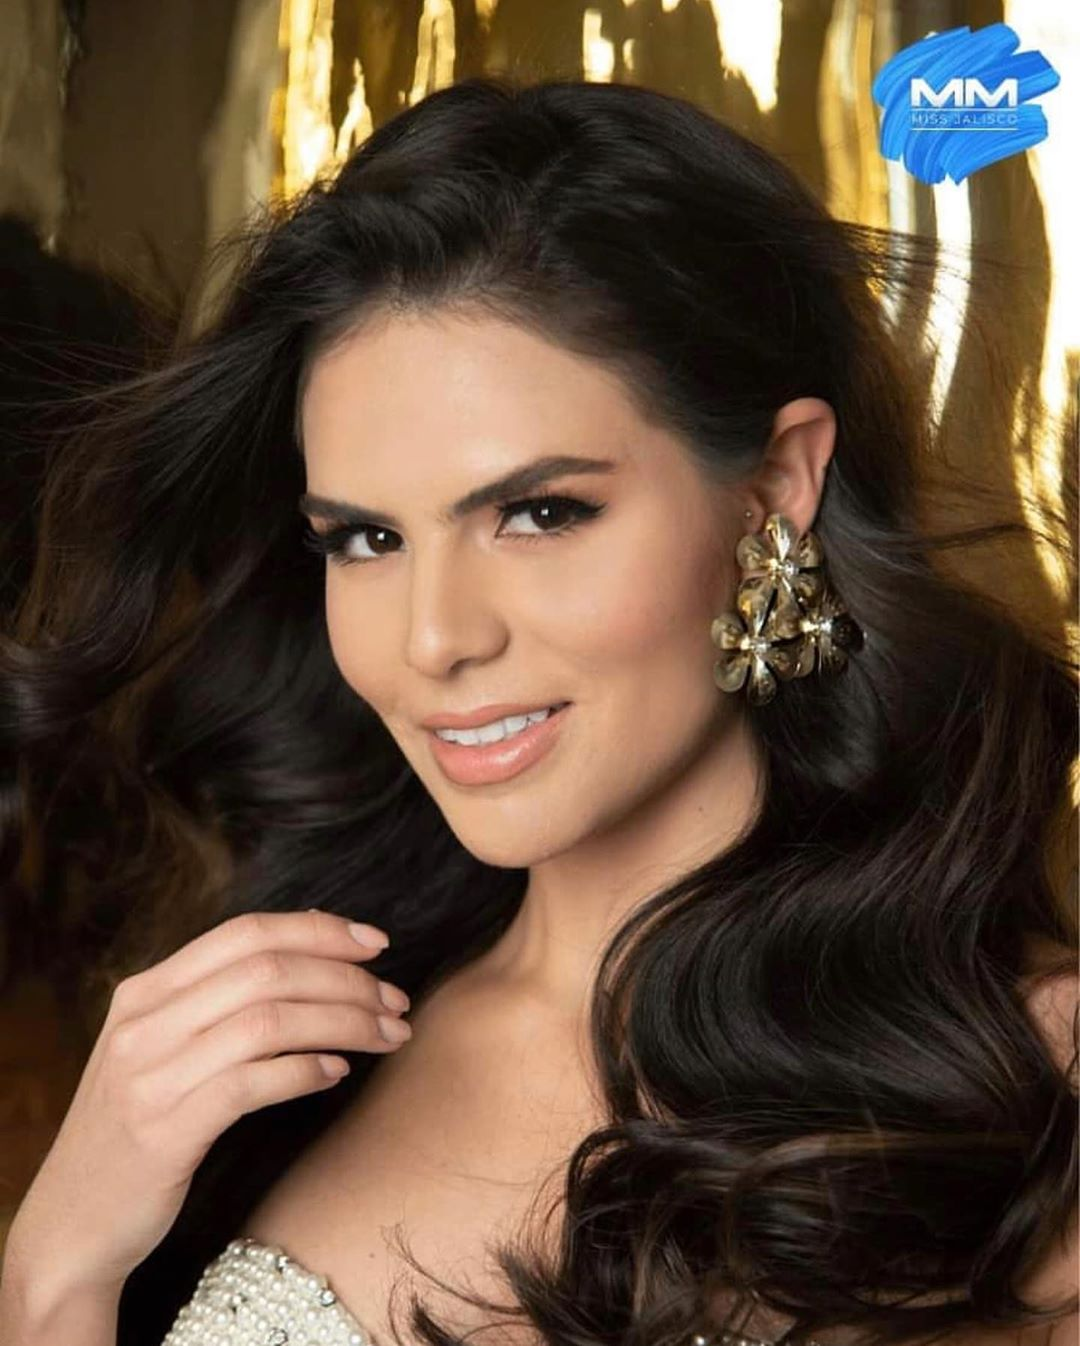 candidatas a miss mexico 2020, final: 31 oct. UwJFmN